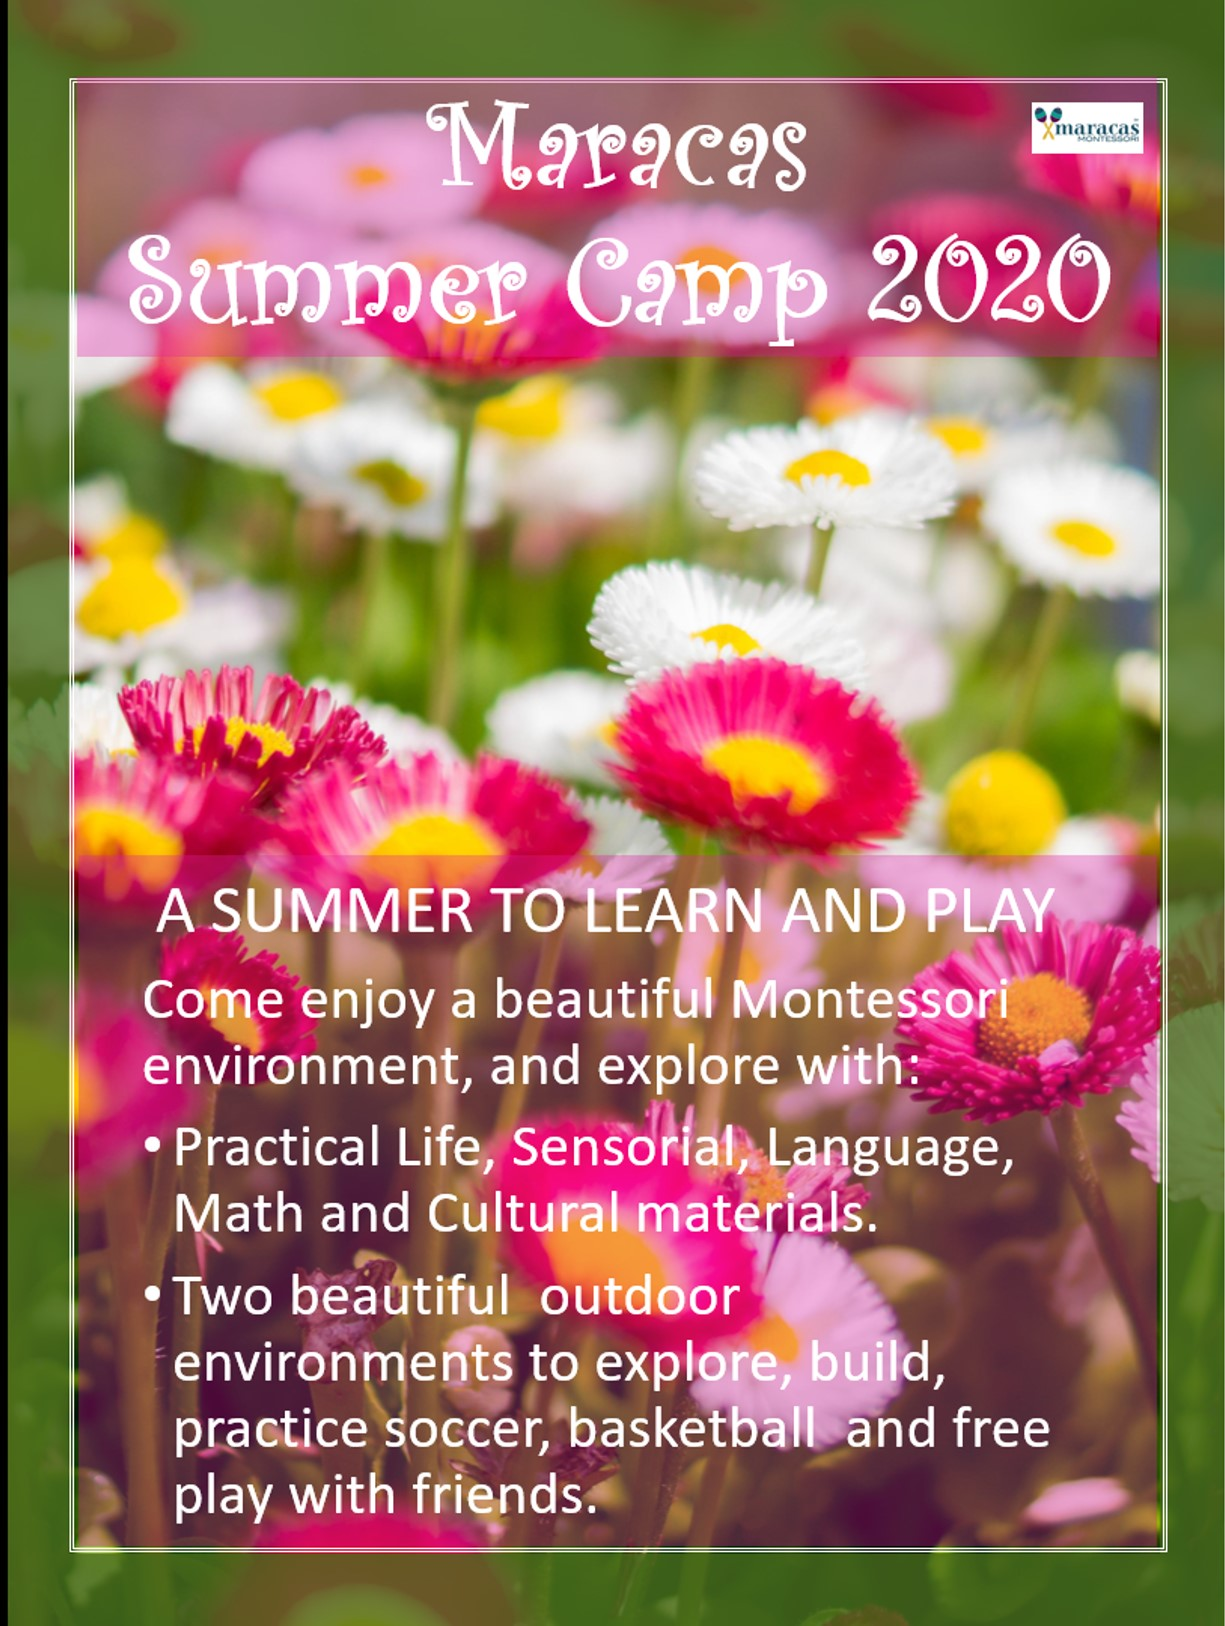 Portada Summer Camp 2020 revamped